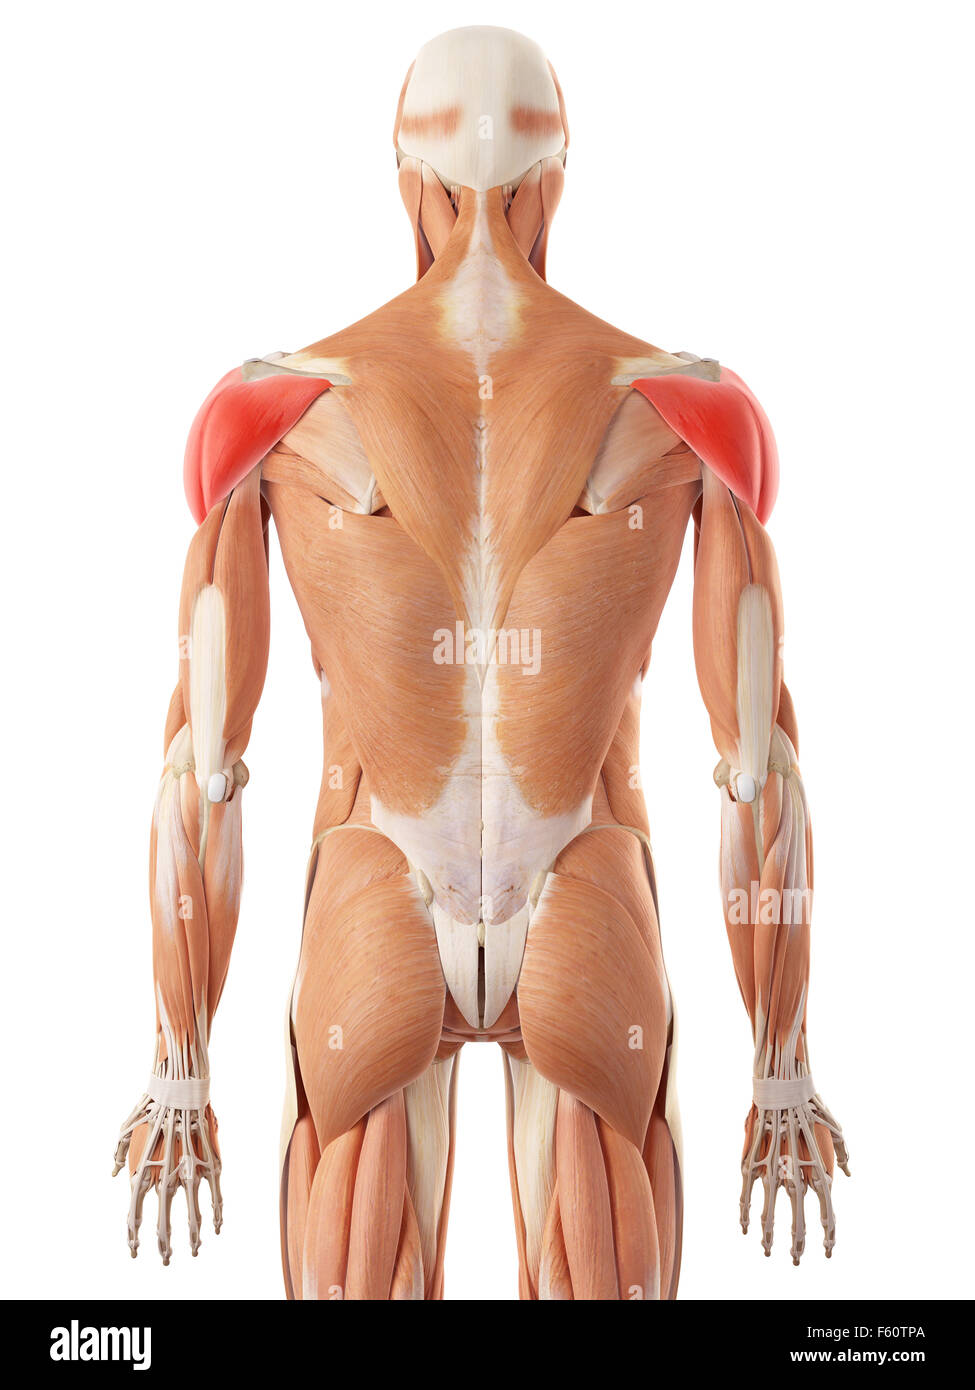 Deltoid Muscle Stock Photos Deltoid Muscle Stock Images Alamy